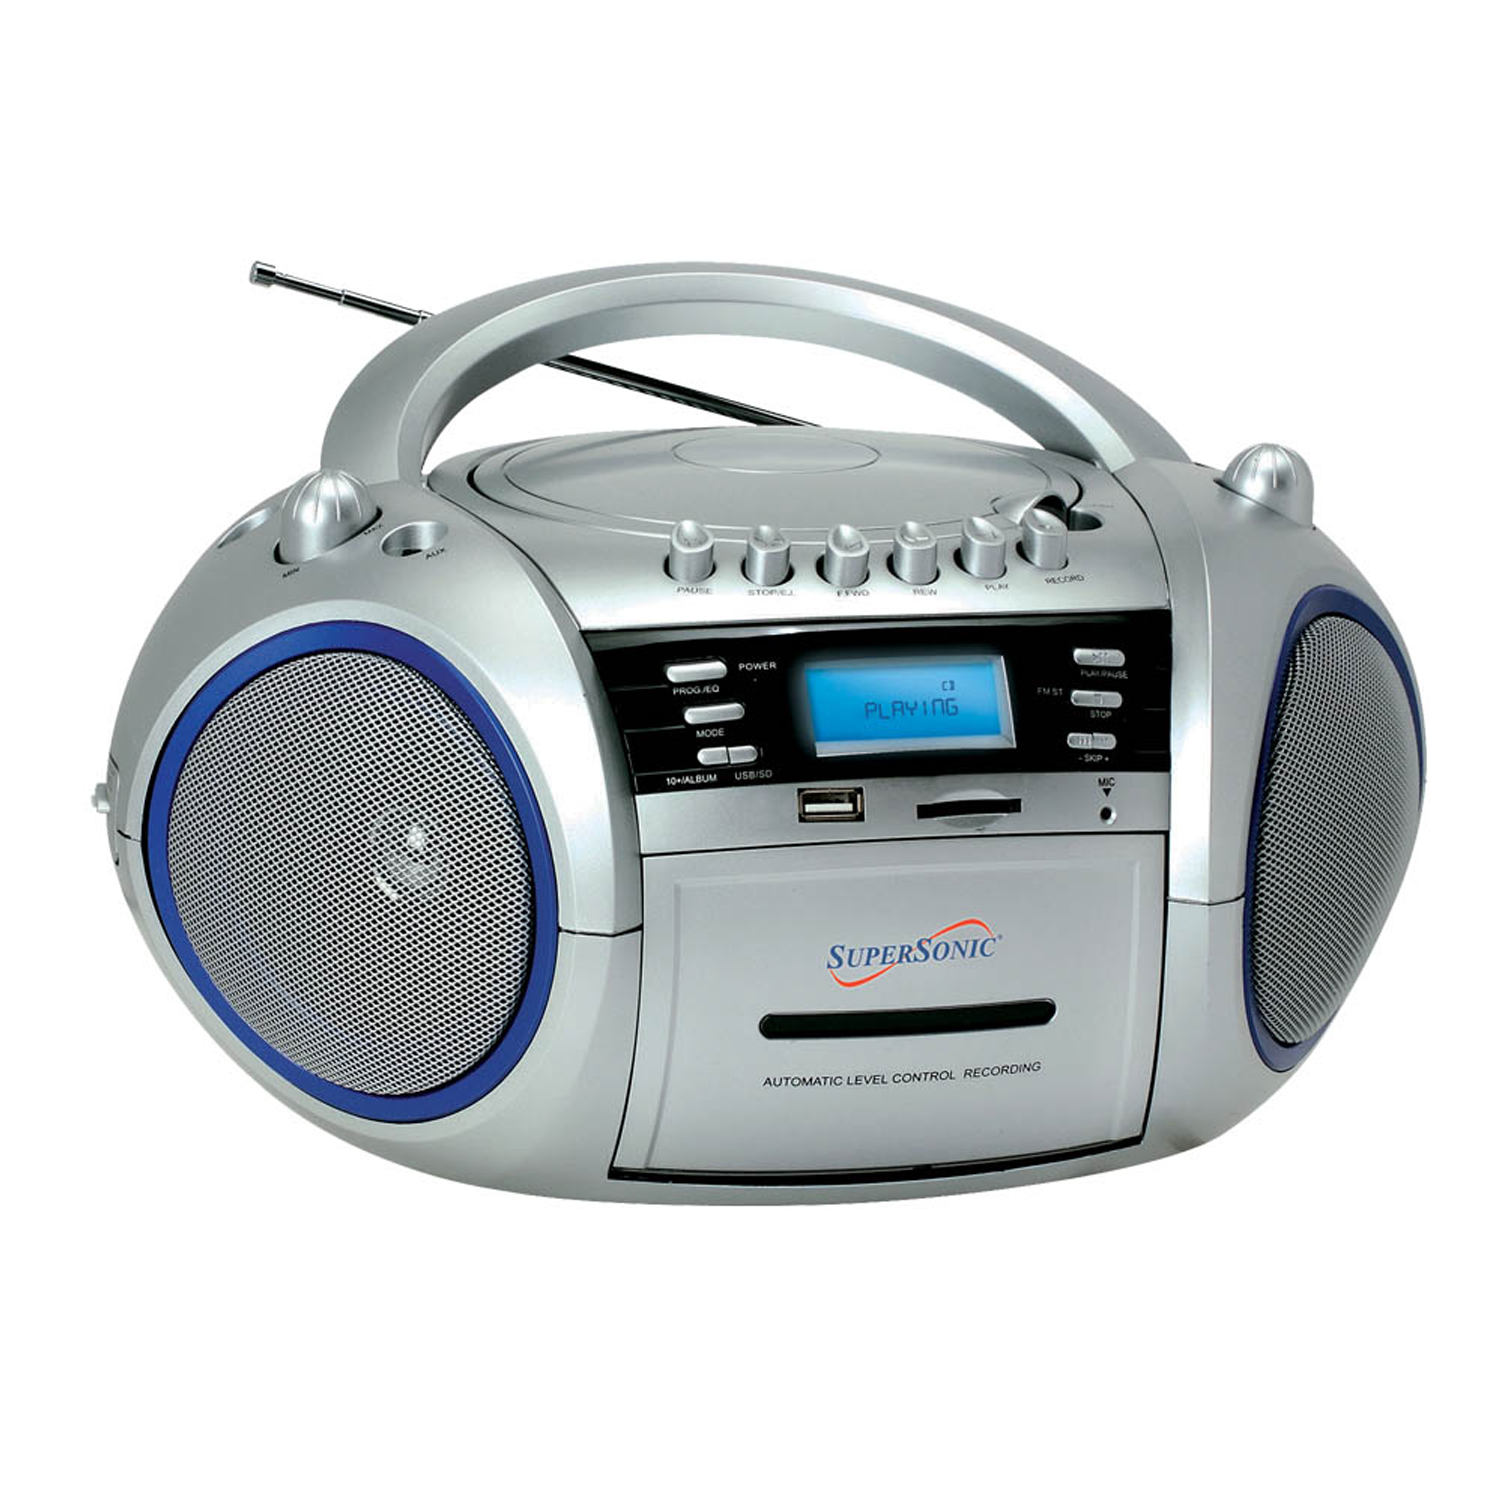 Supersonic SC-183UM Portable MP3/CD/WMA Player, Cassette Recorder, AM/FM Radio with USB/SD/MMC Inputs at Sears.com